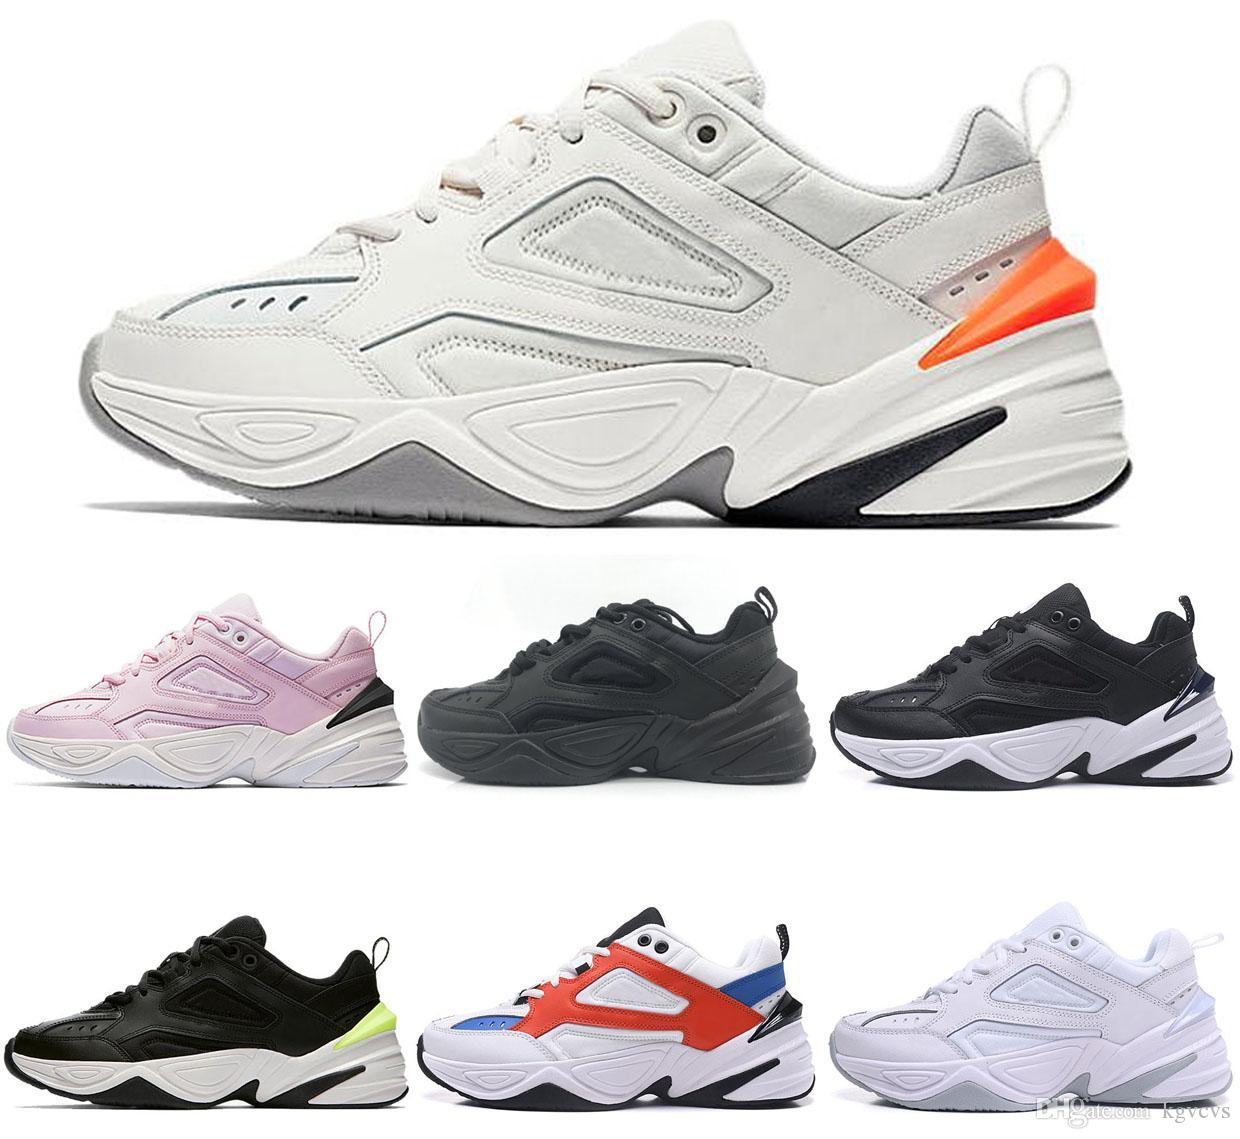 535ea6539ae2a Nike 2018 New M2K Tekno Air Monarch Sports Running Shoes f Women Mens  Designer shoes Zapatillas Trainers Designer Sneakers 36-45